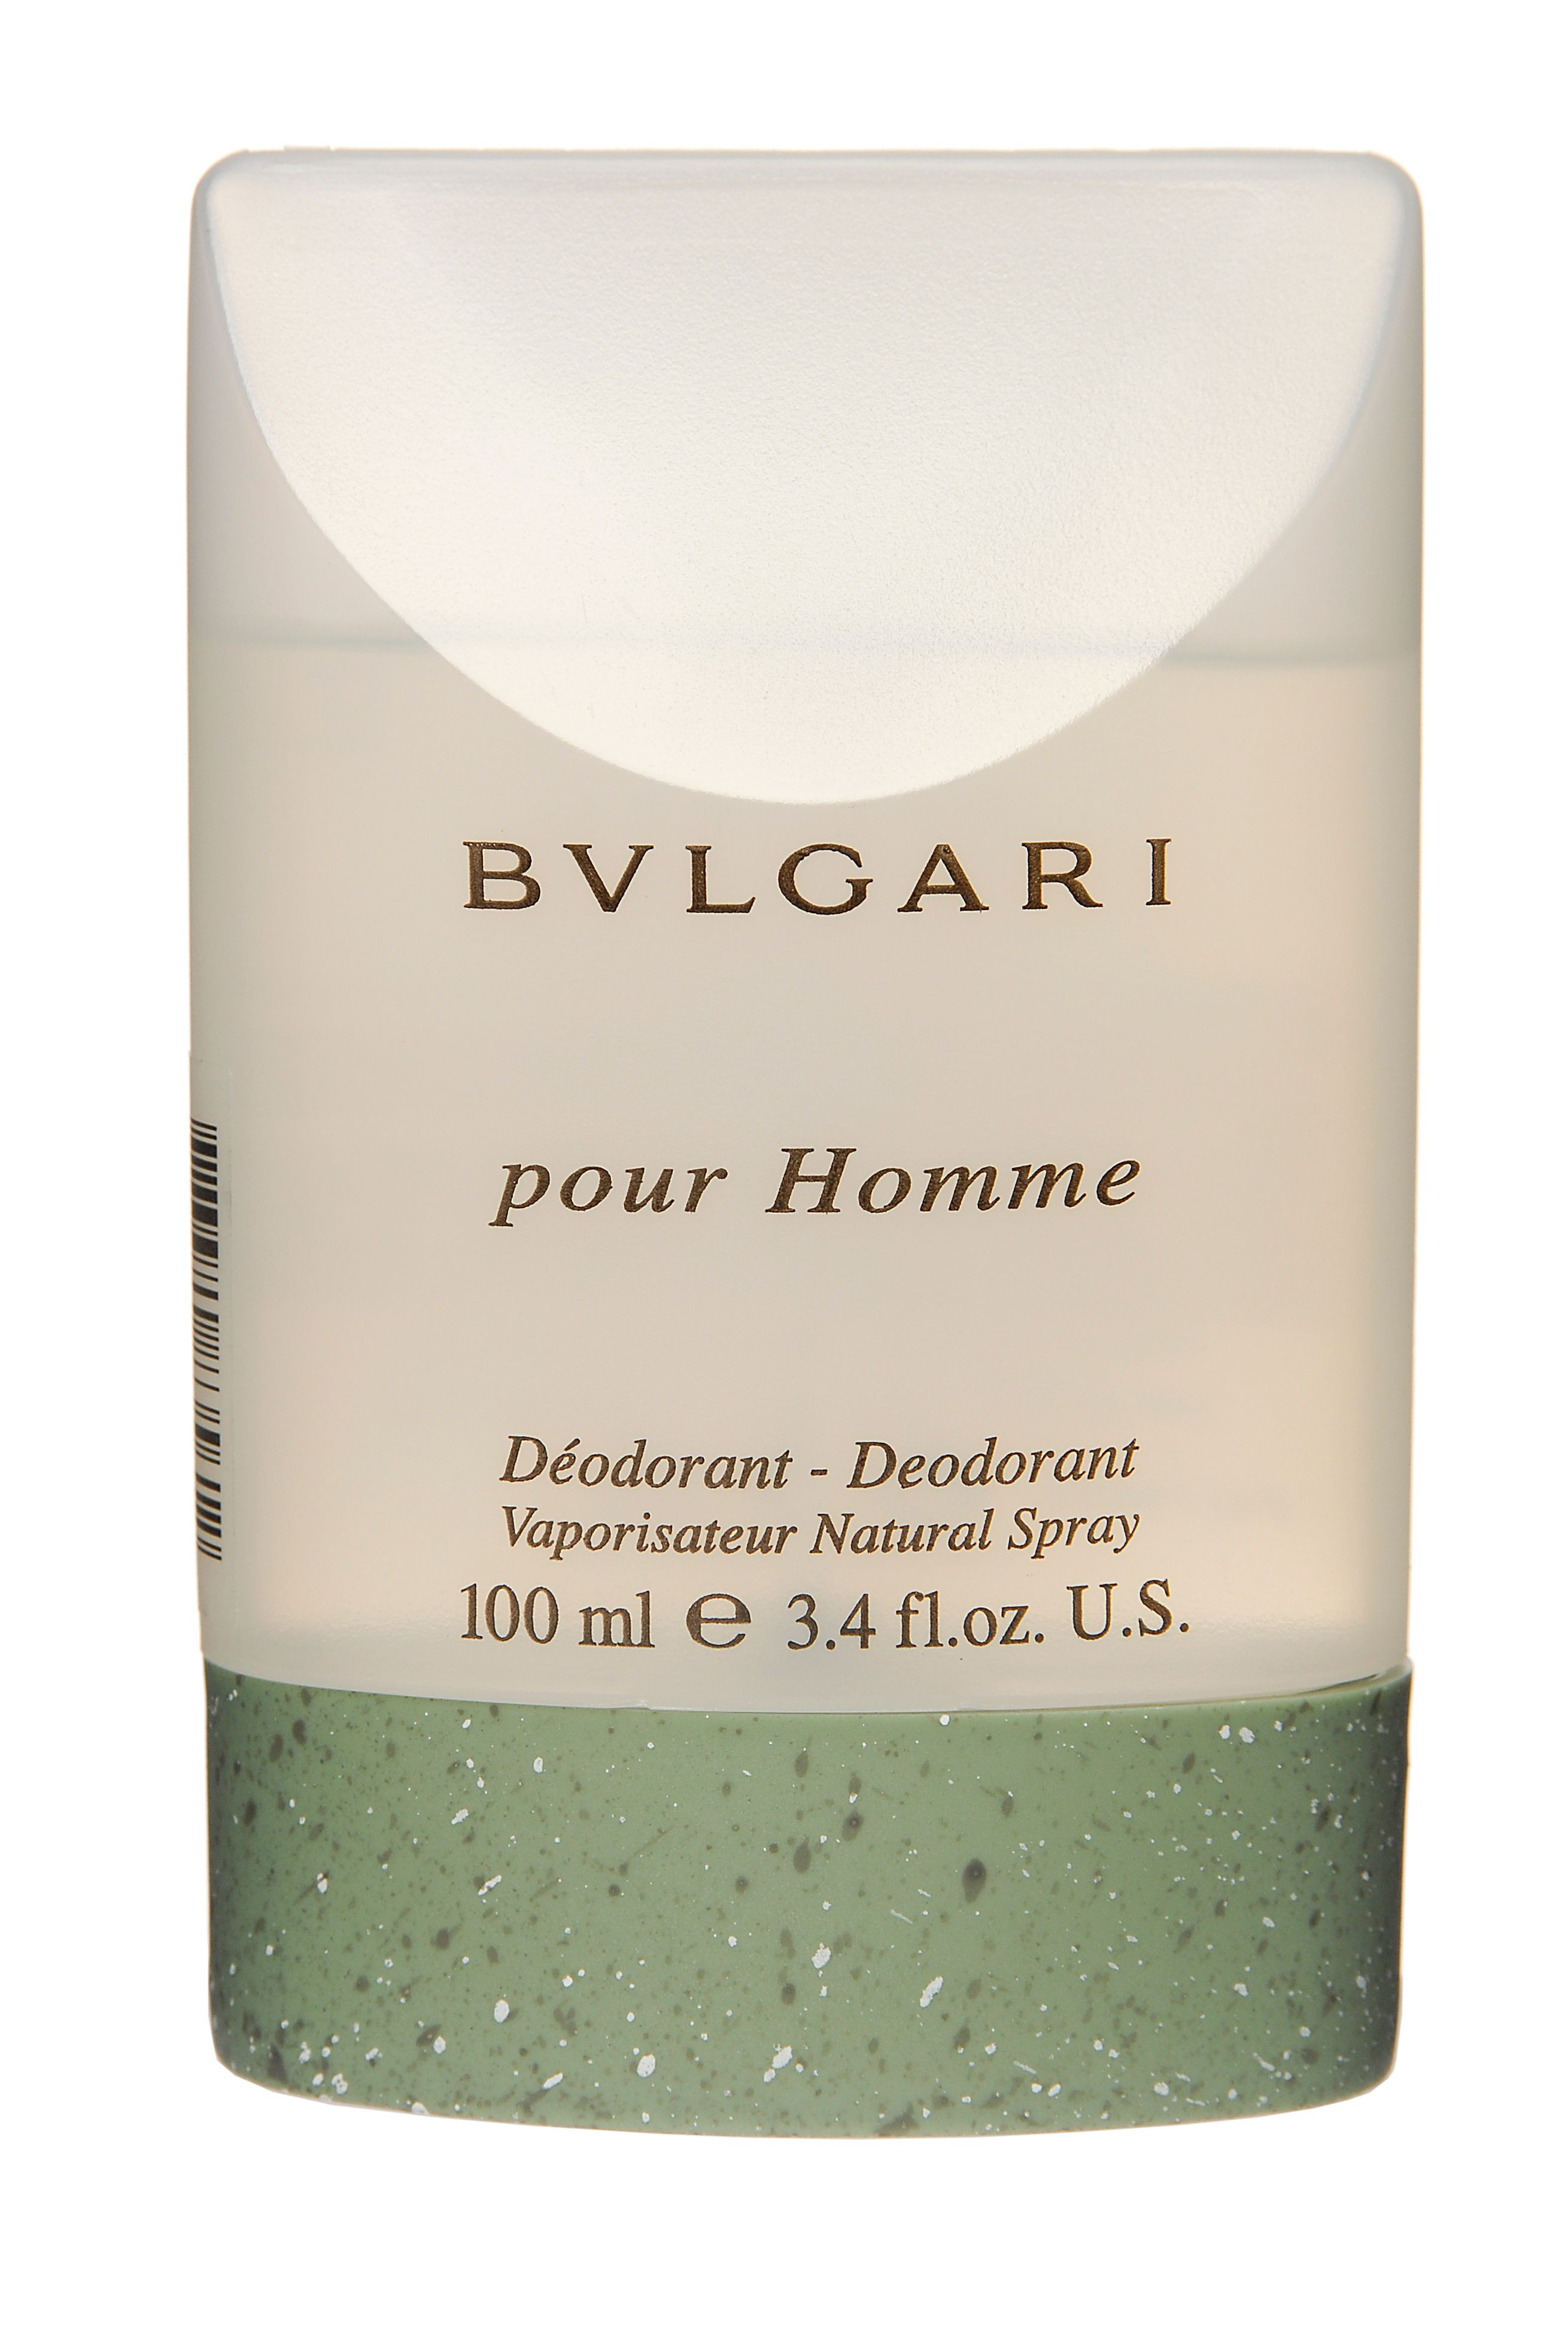 Bvlgari 100ml pour homme deodorant spray product image